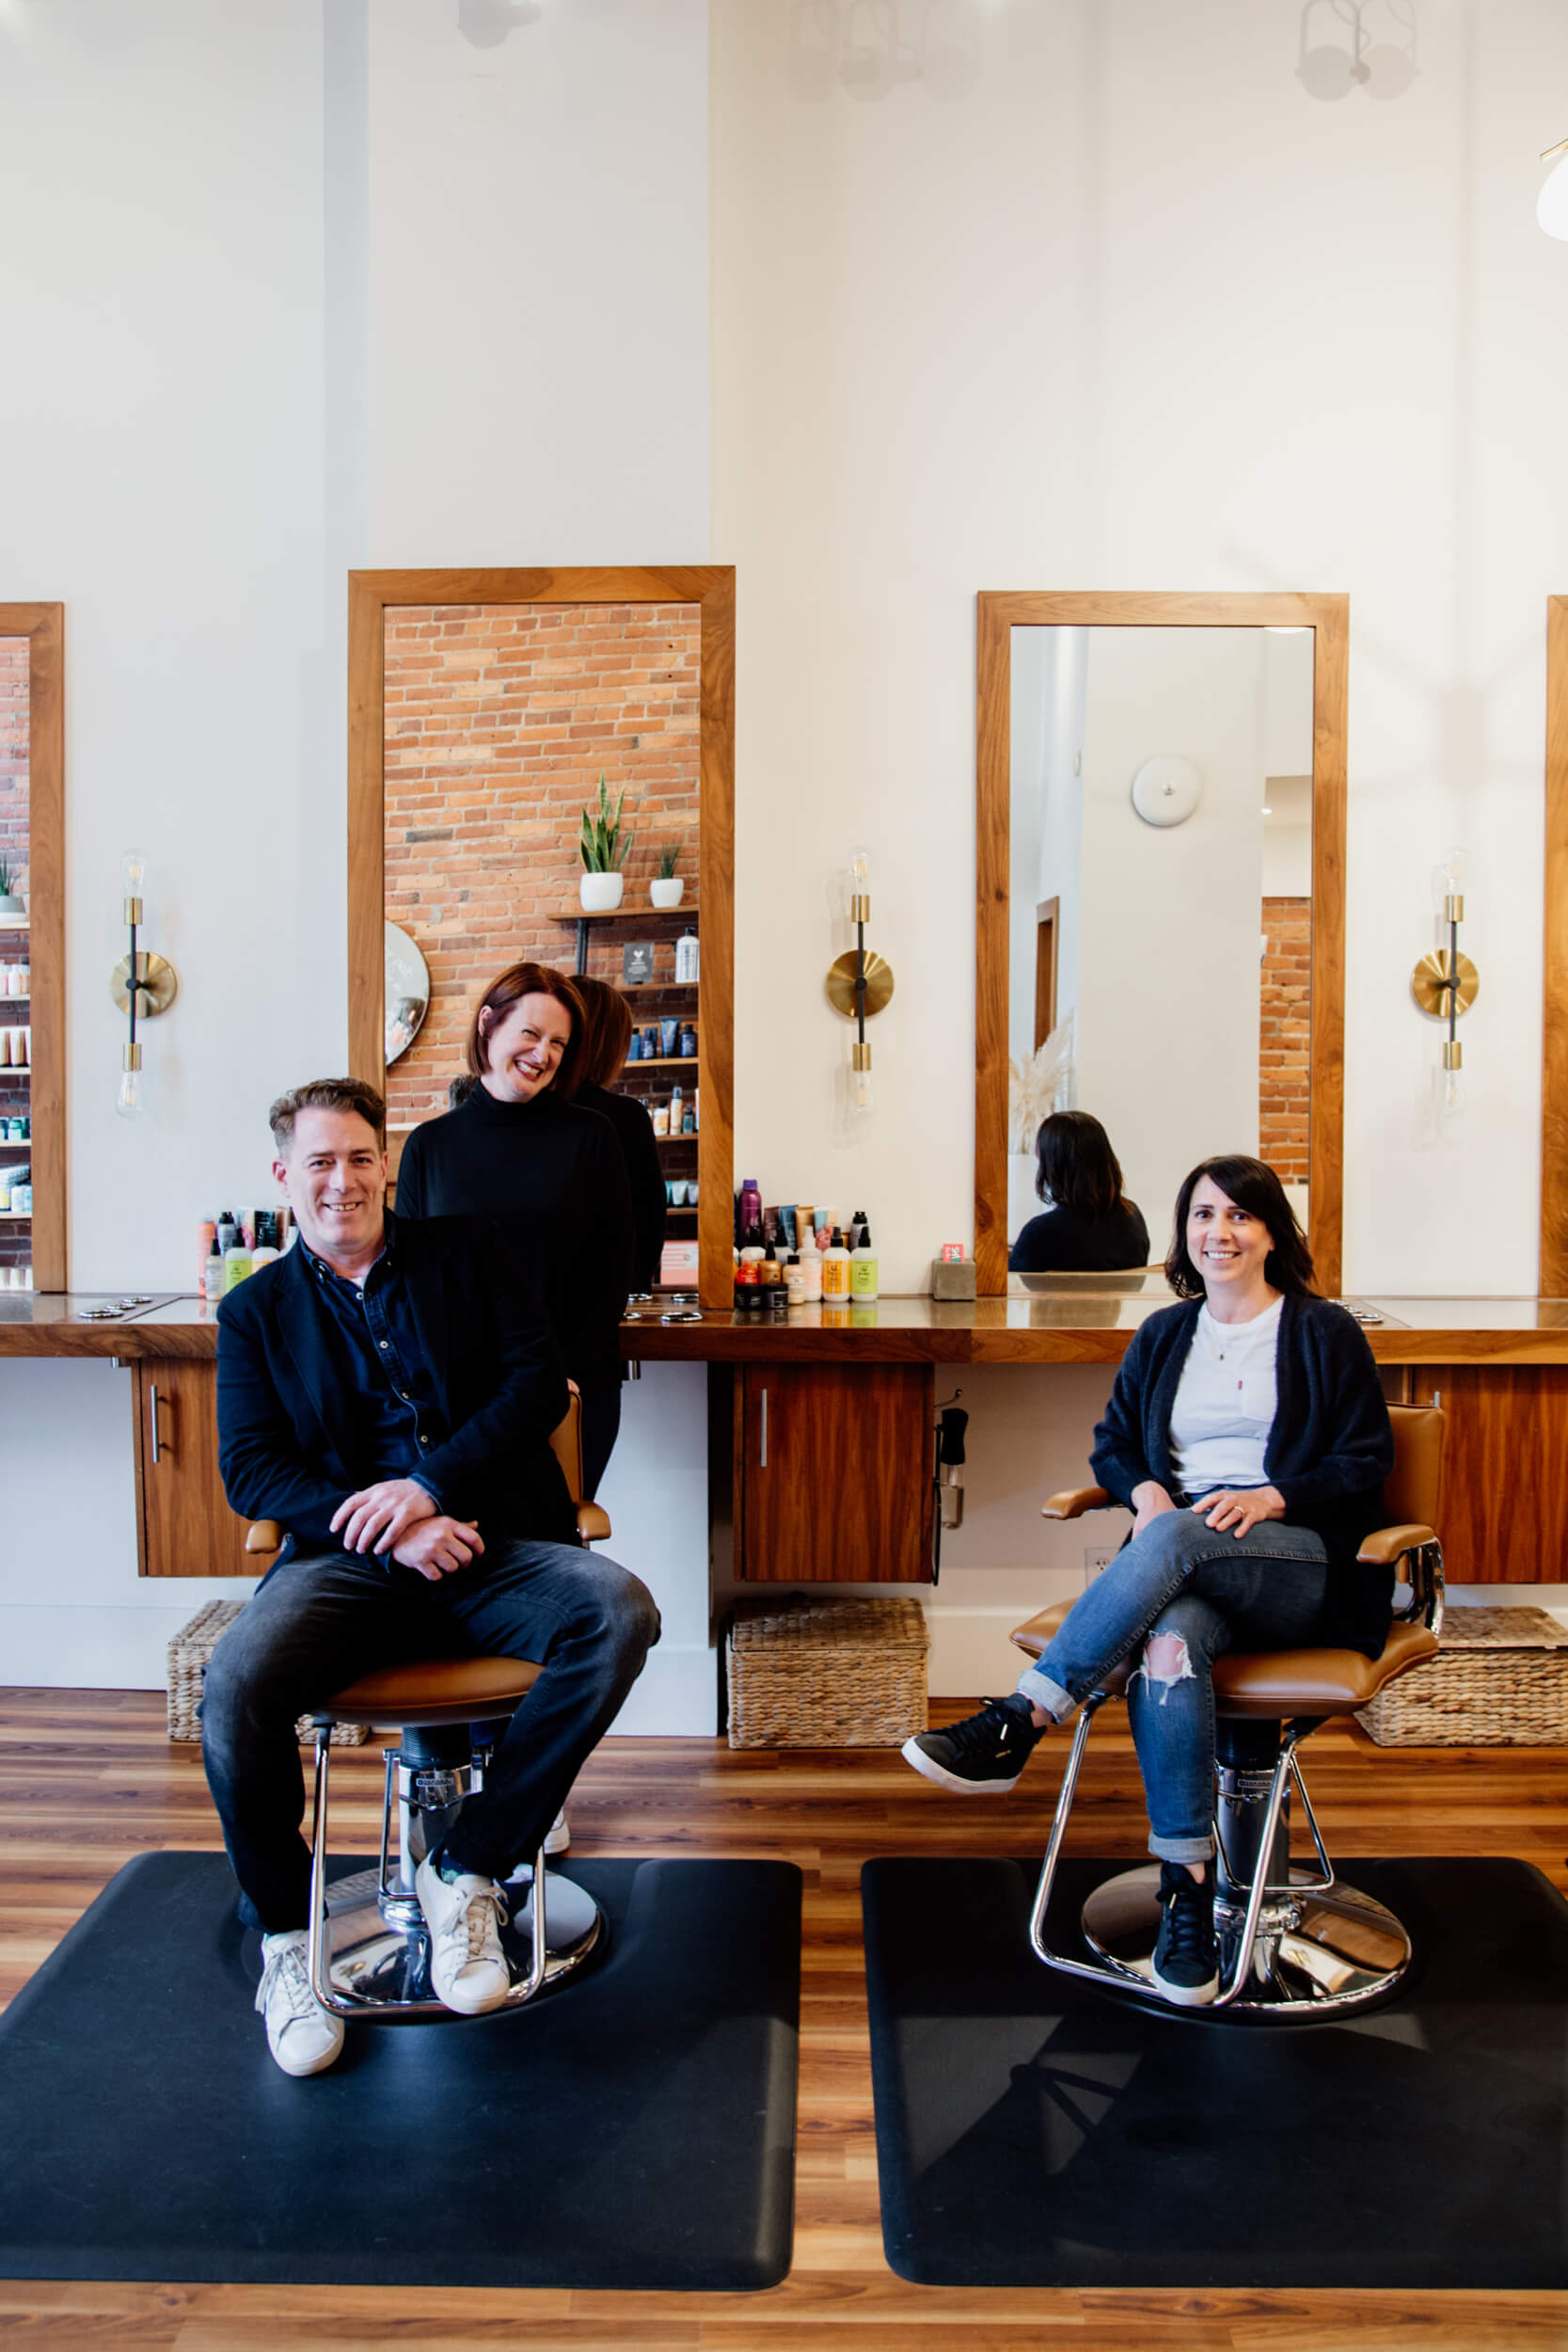 Three people sit in salon chairs and smile.